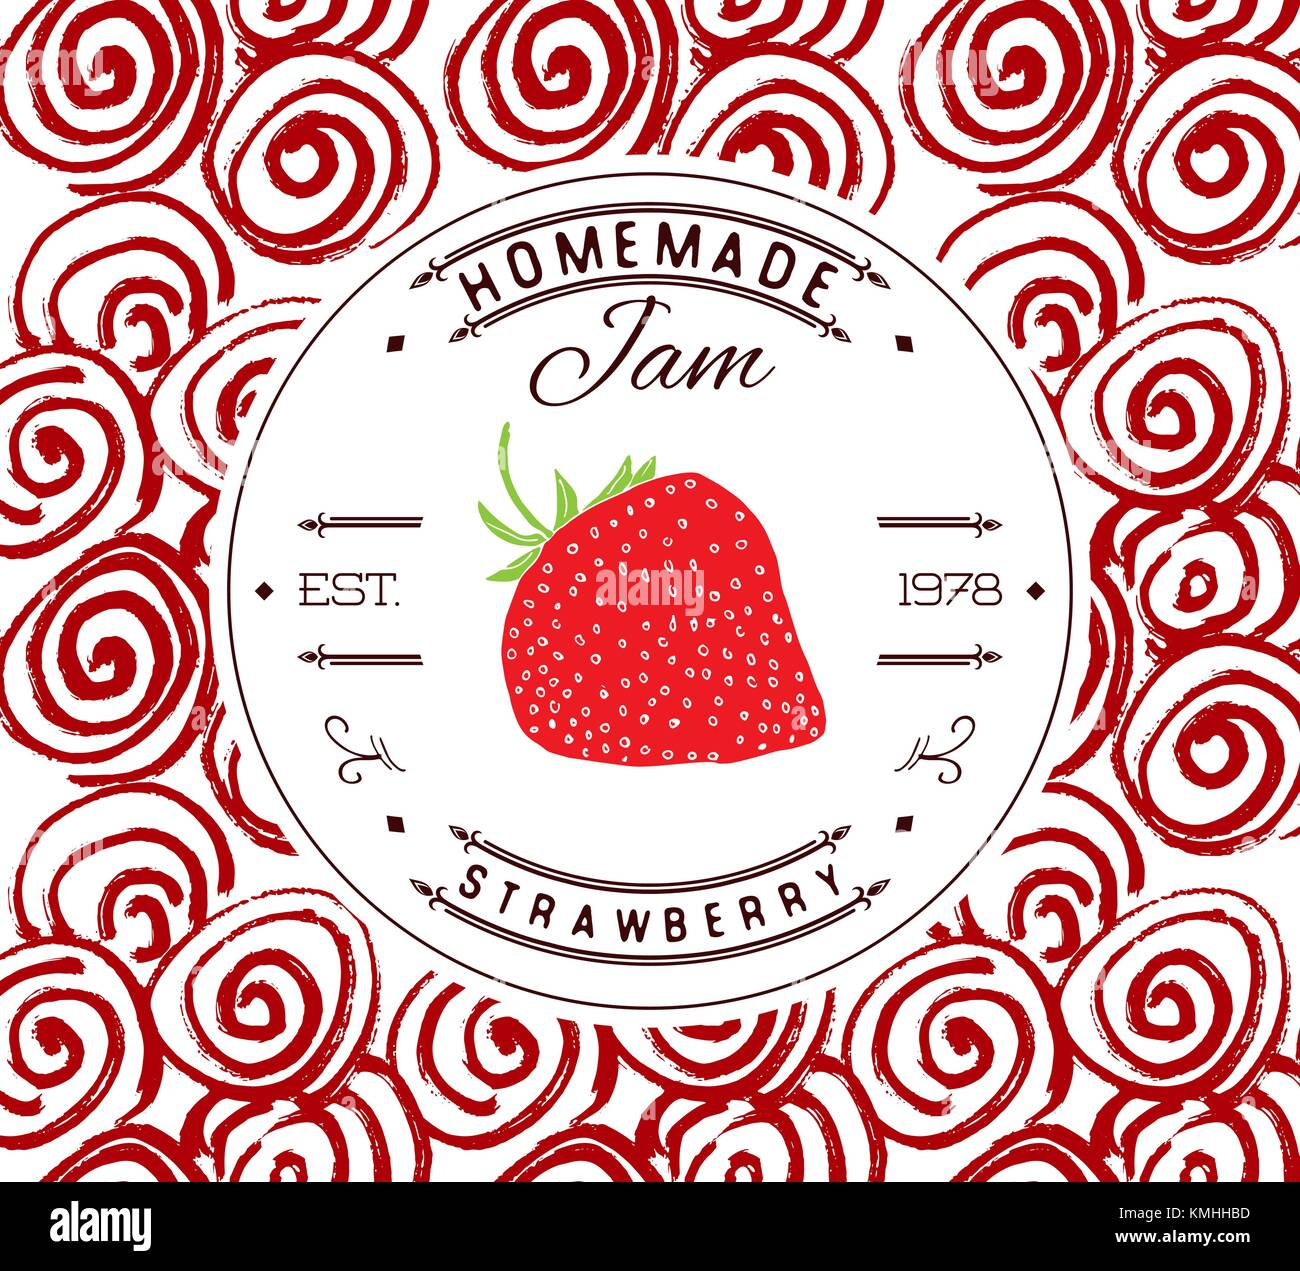 Jam label design template. for strawberry dessert product with hand ...